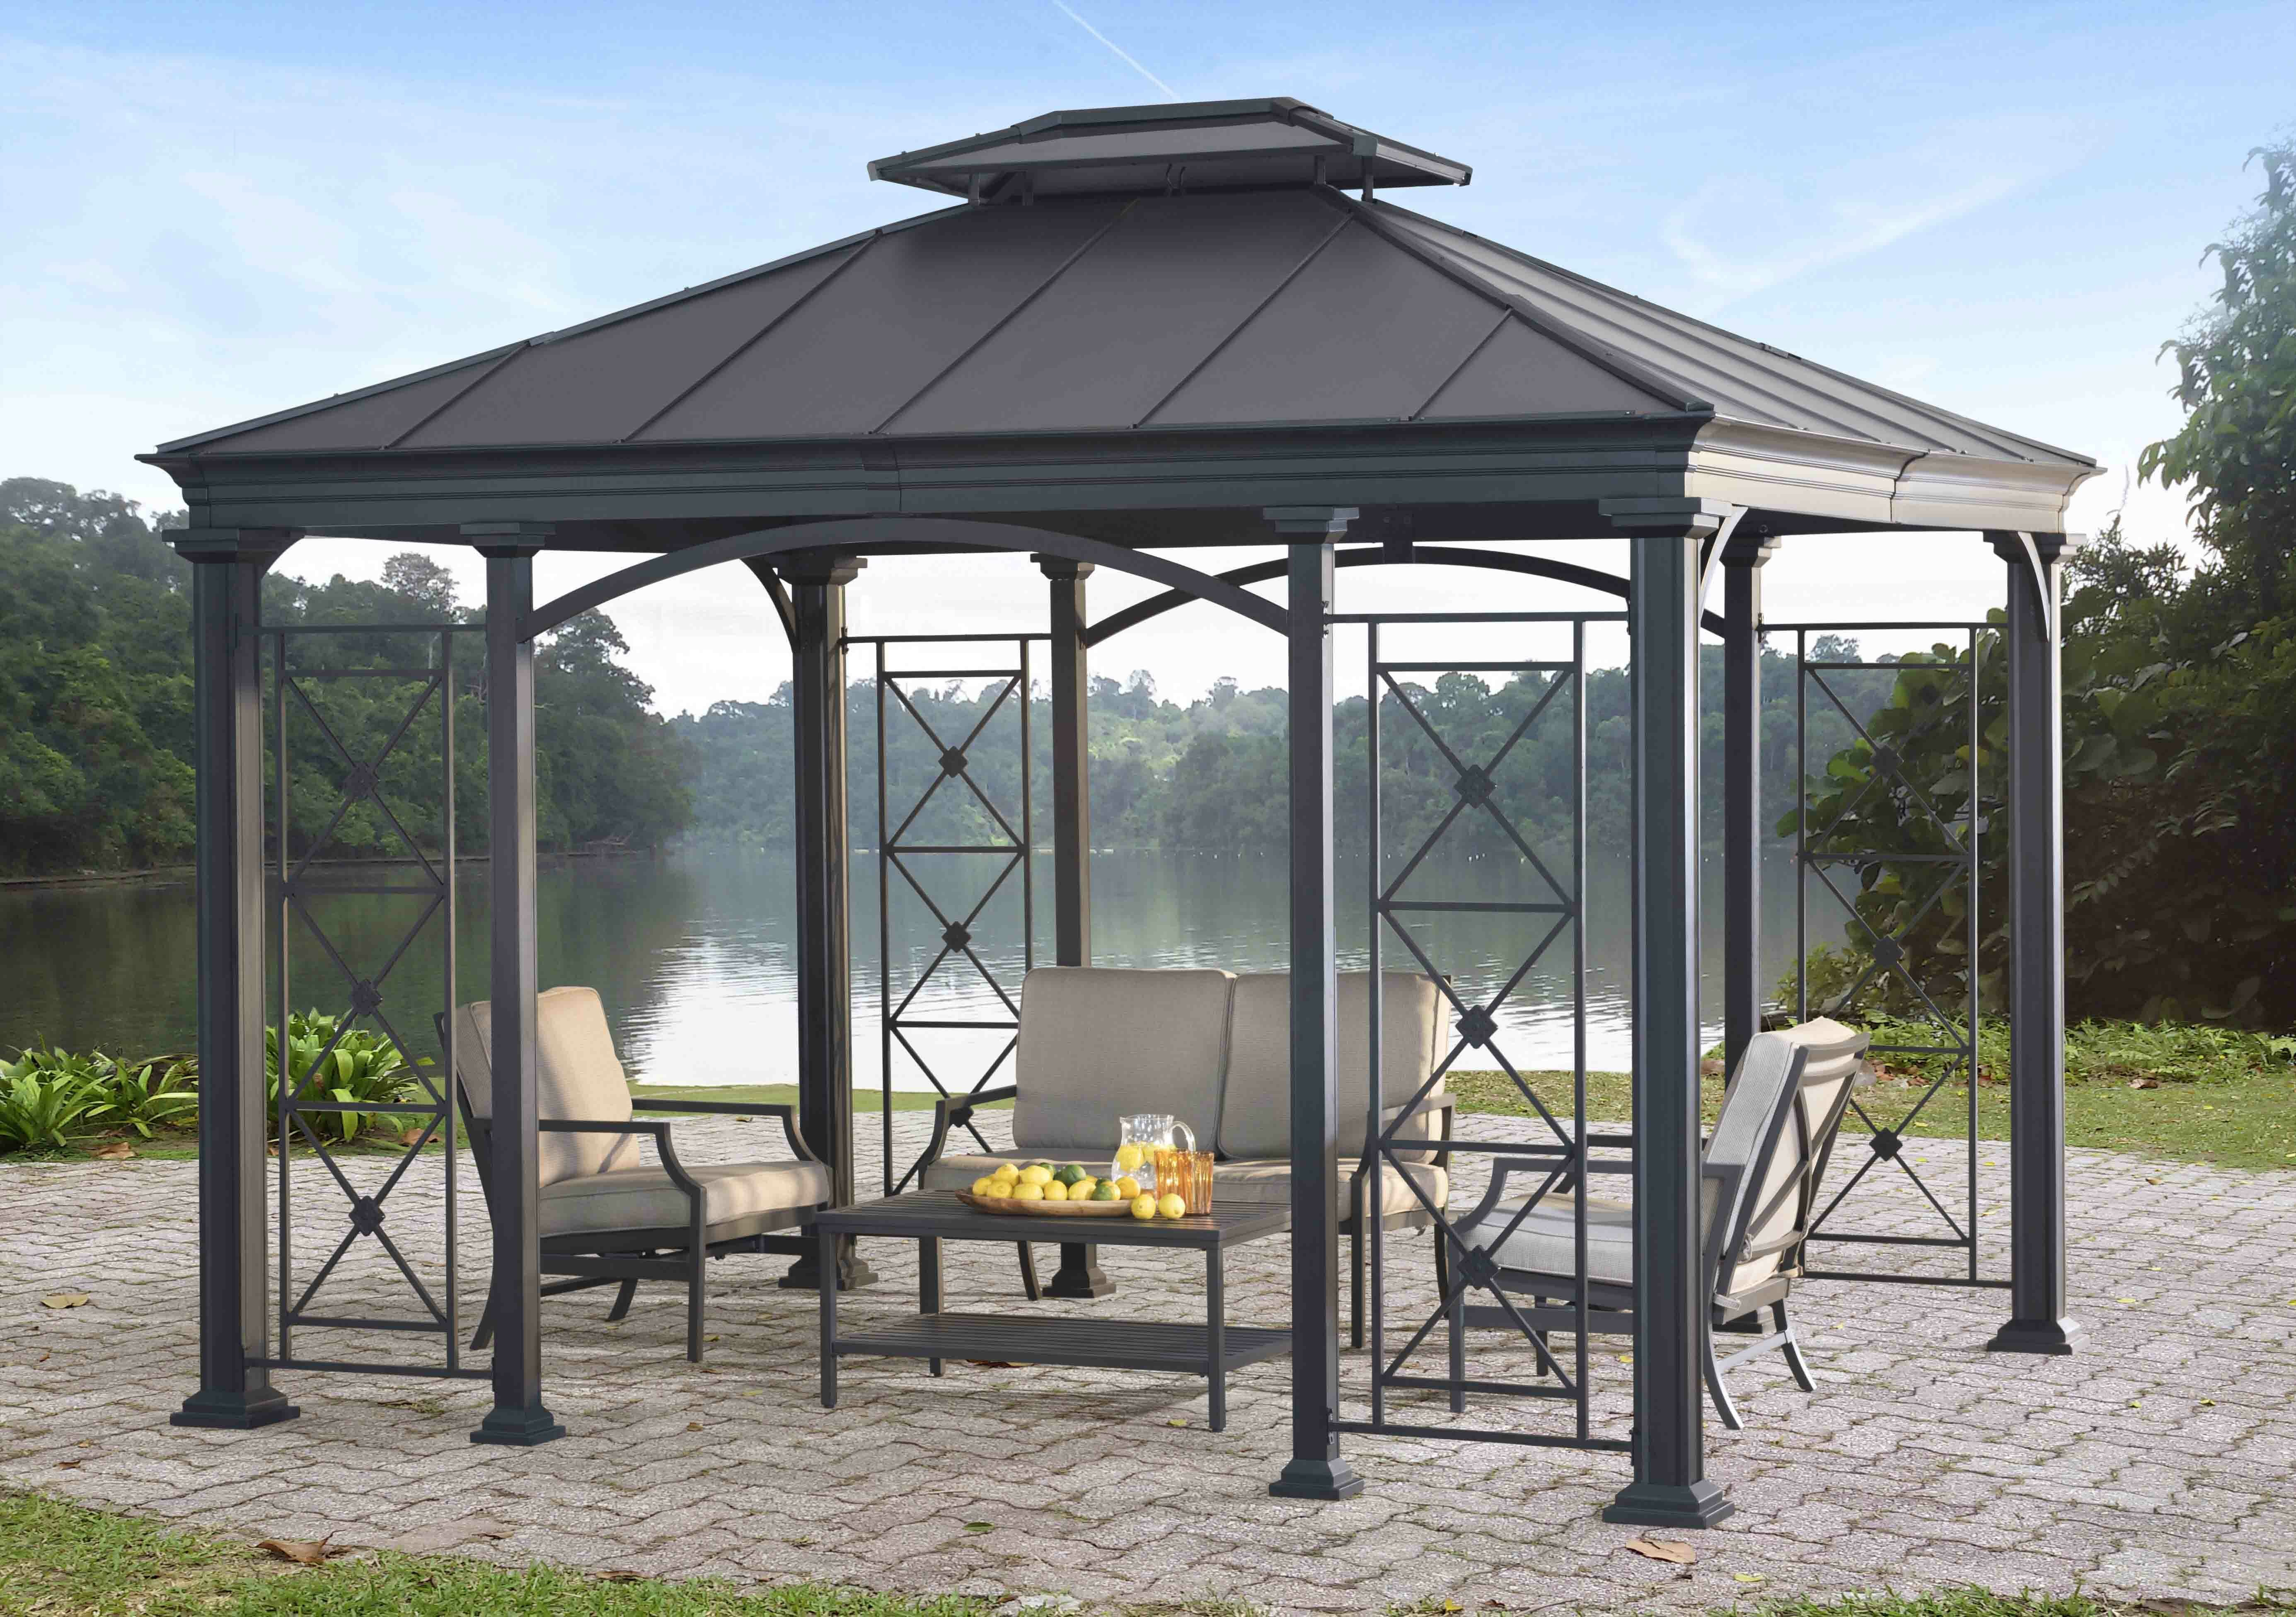 and to patio with curtain friends relax family gazebo ideas